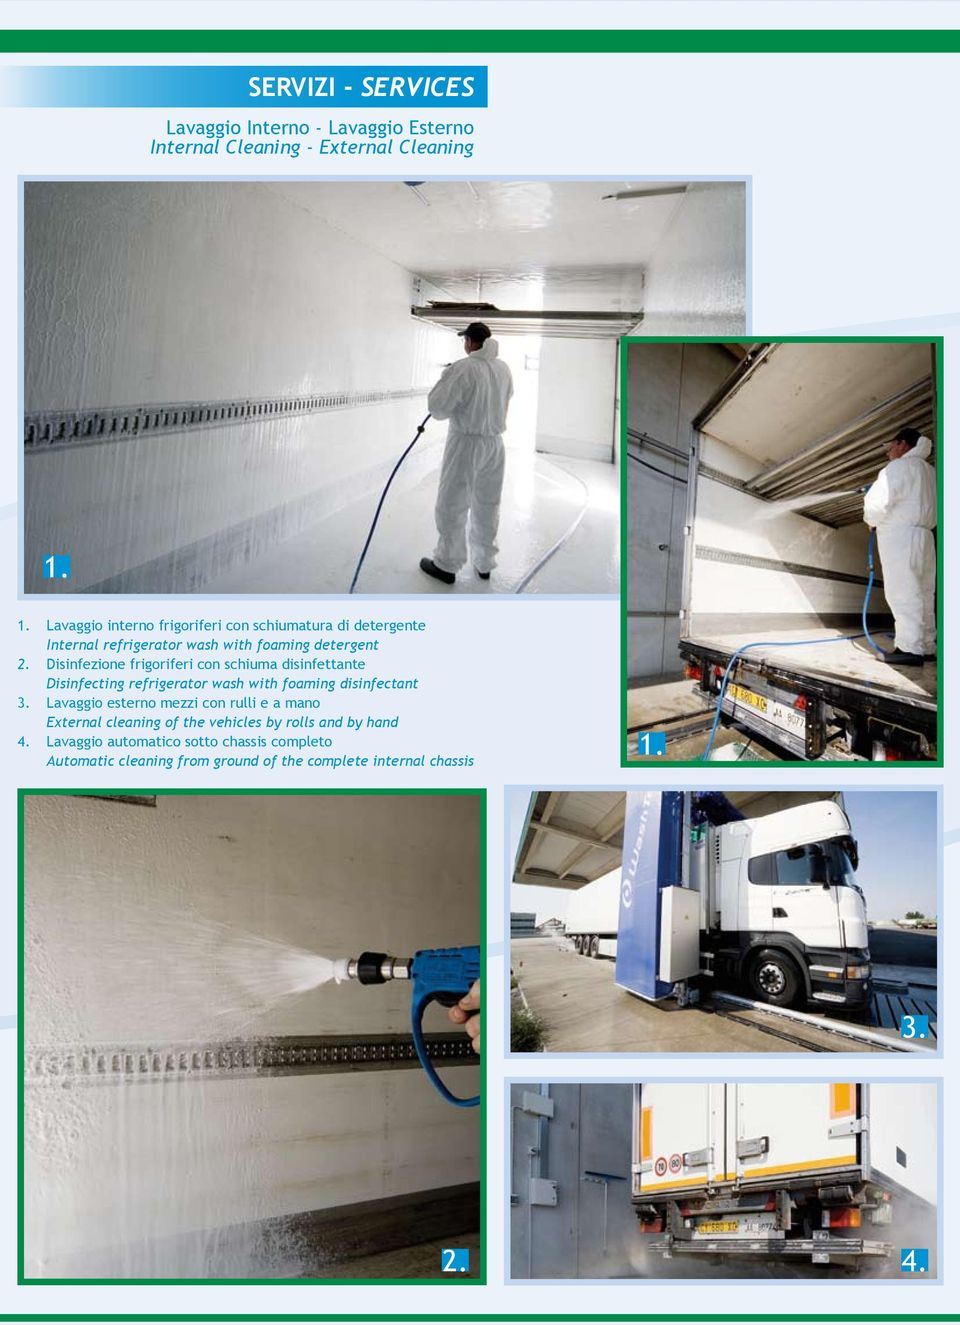 Disinfecting refrigerator wash with foaming disinfectant Lavaggio esterno mezzi con rulli e a mano External cleaning of the